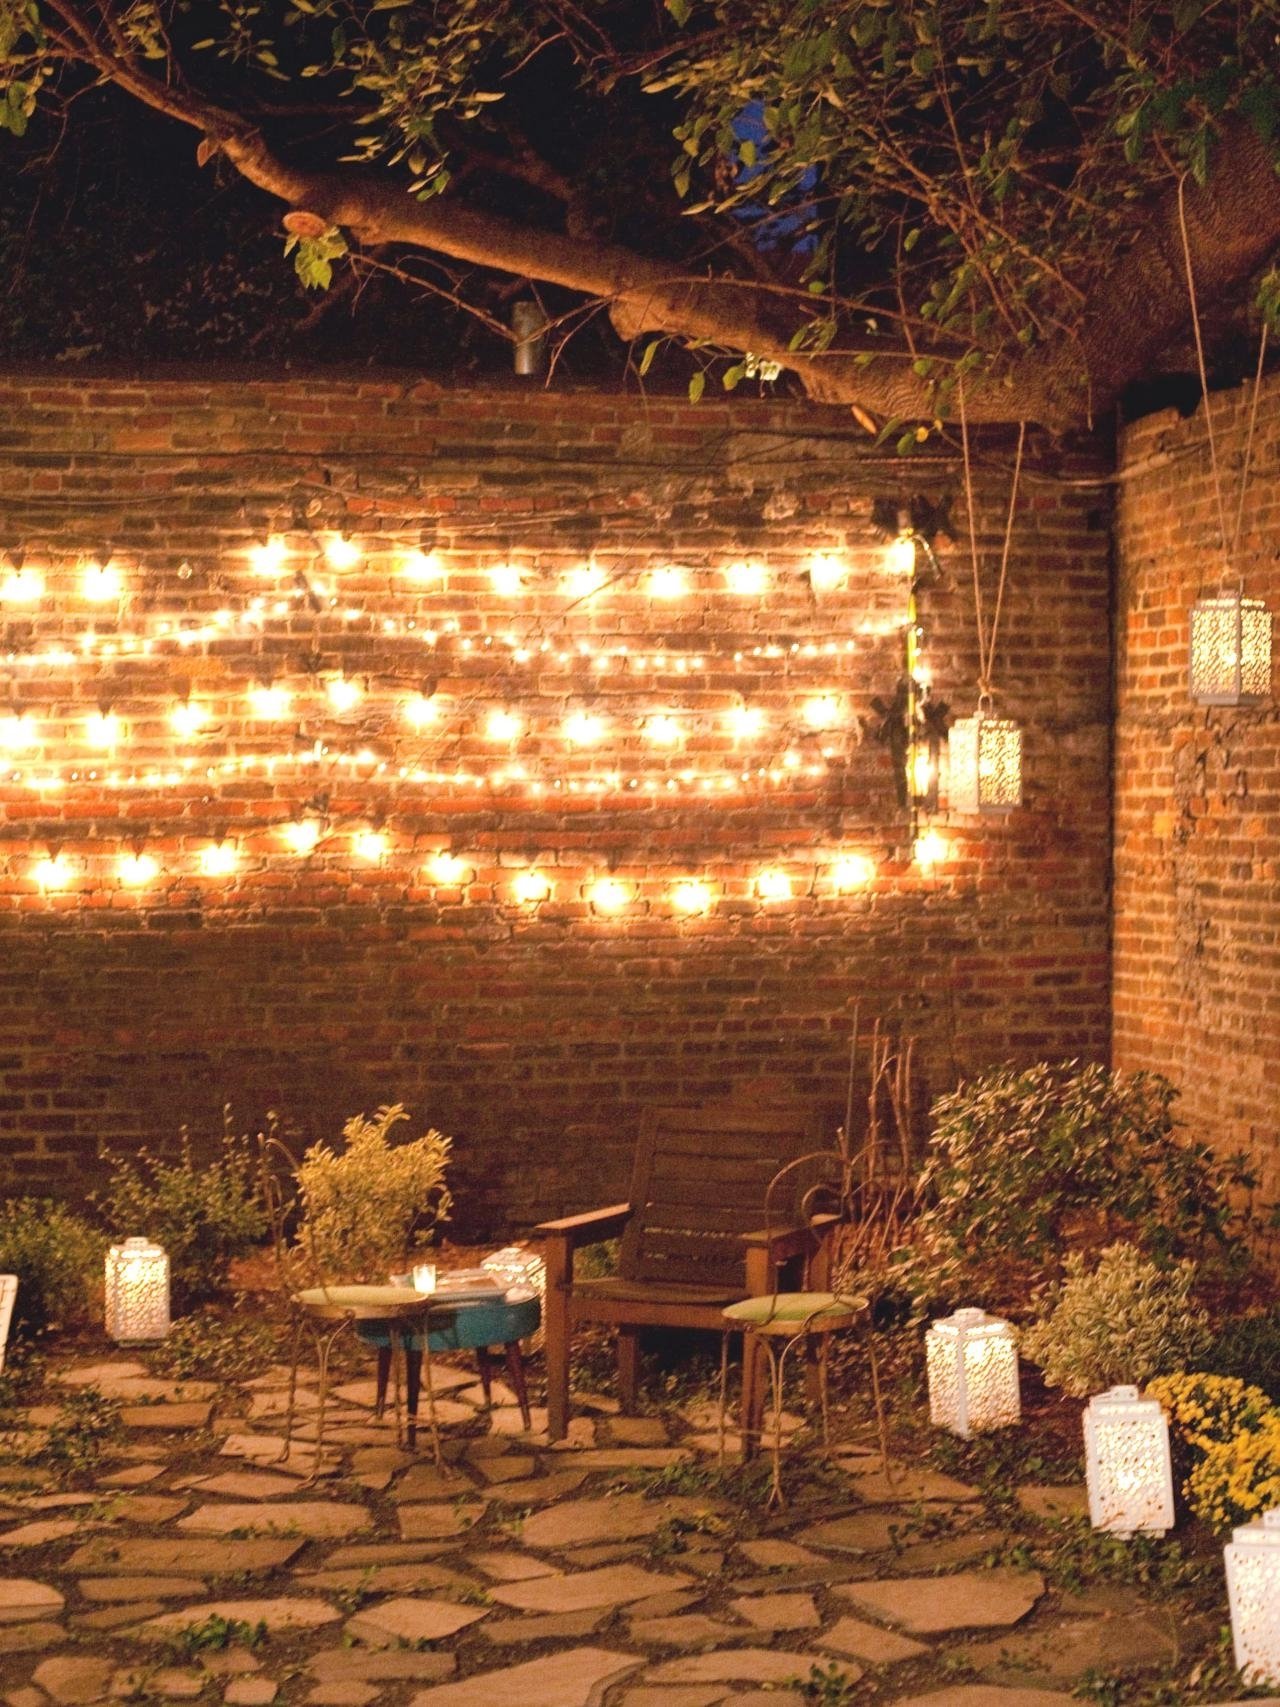 Preferred Garden And Outdoor String Lights Pertaining To Home Lighting : Outdoor Garden String Lighting Poles (View 17 of 20)